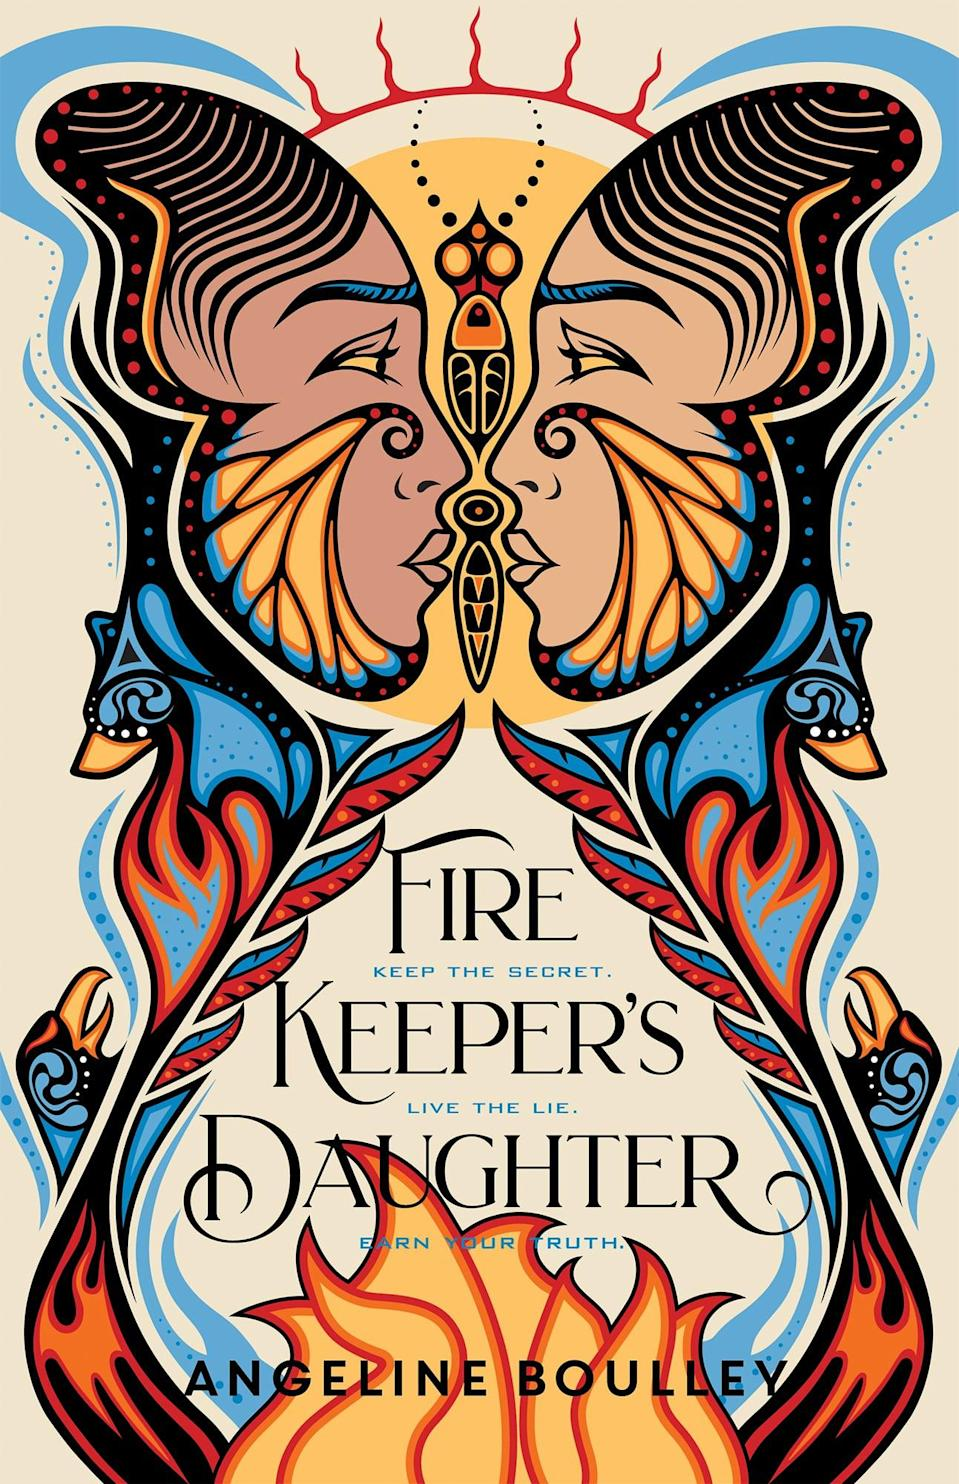 <p>Angeline Boulley's debut novel, <span><strong>Fire Keeper's Daughter</strong></span>, follows an 18-year-old Native girl, Daunis Fontaine, who is drawn into an undercover investigation after witnessing a shocking act of violence. Now Daunis, who has never felt at home within the tribal community or outside of it, is determined to use her knowledge of chemistry and Ojibwe traditional medicine to solve the case on her own.</p> <p><em>Out March 2</em></p>